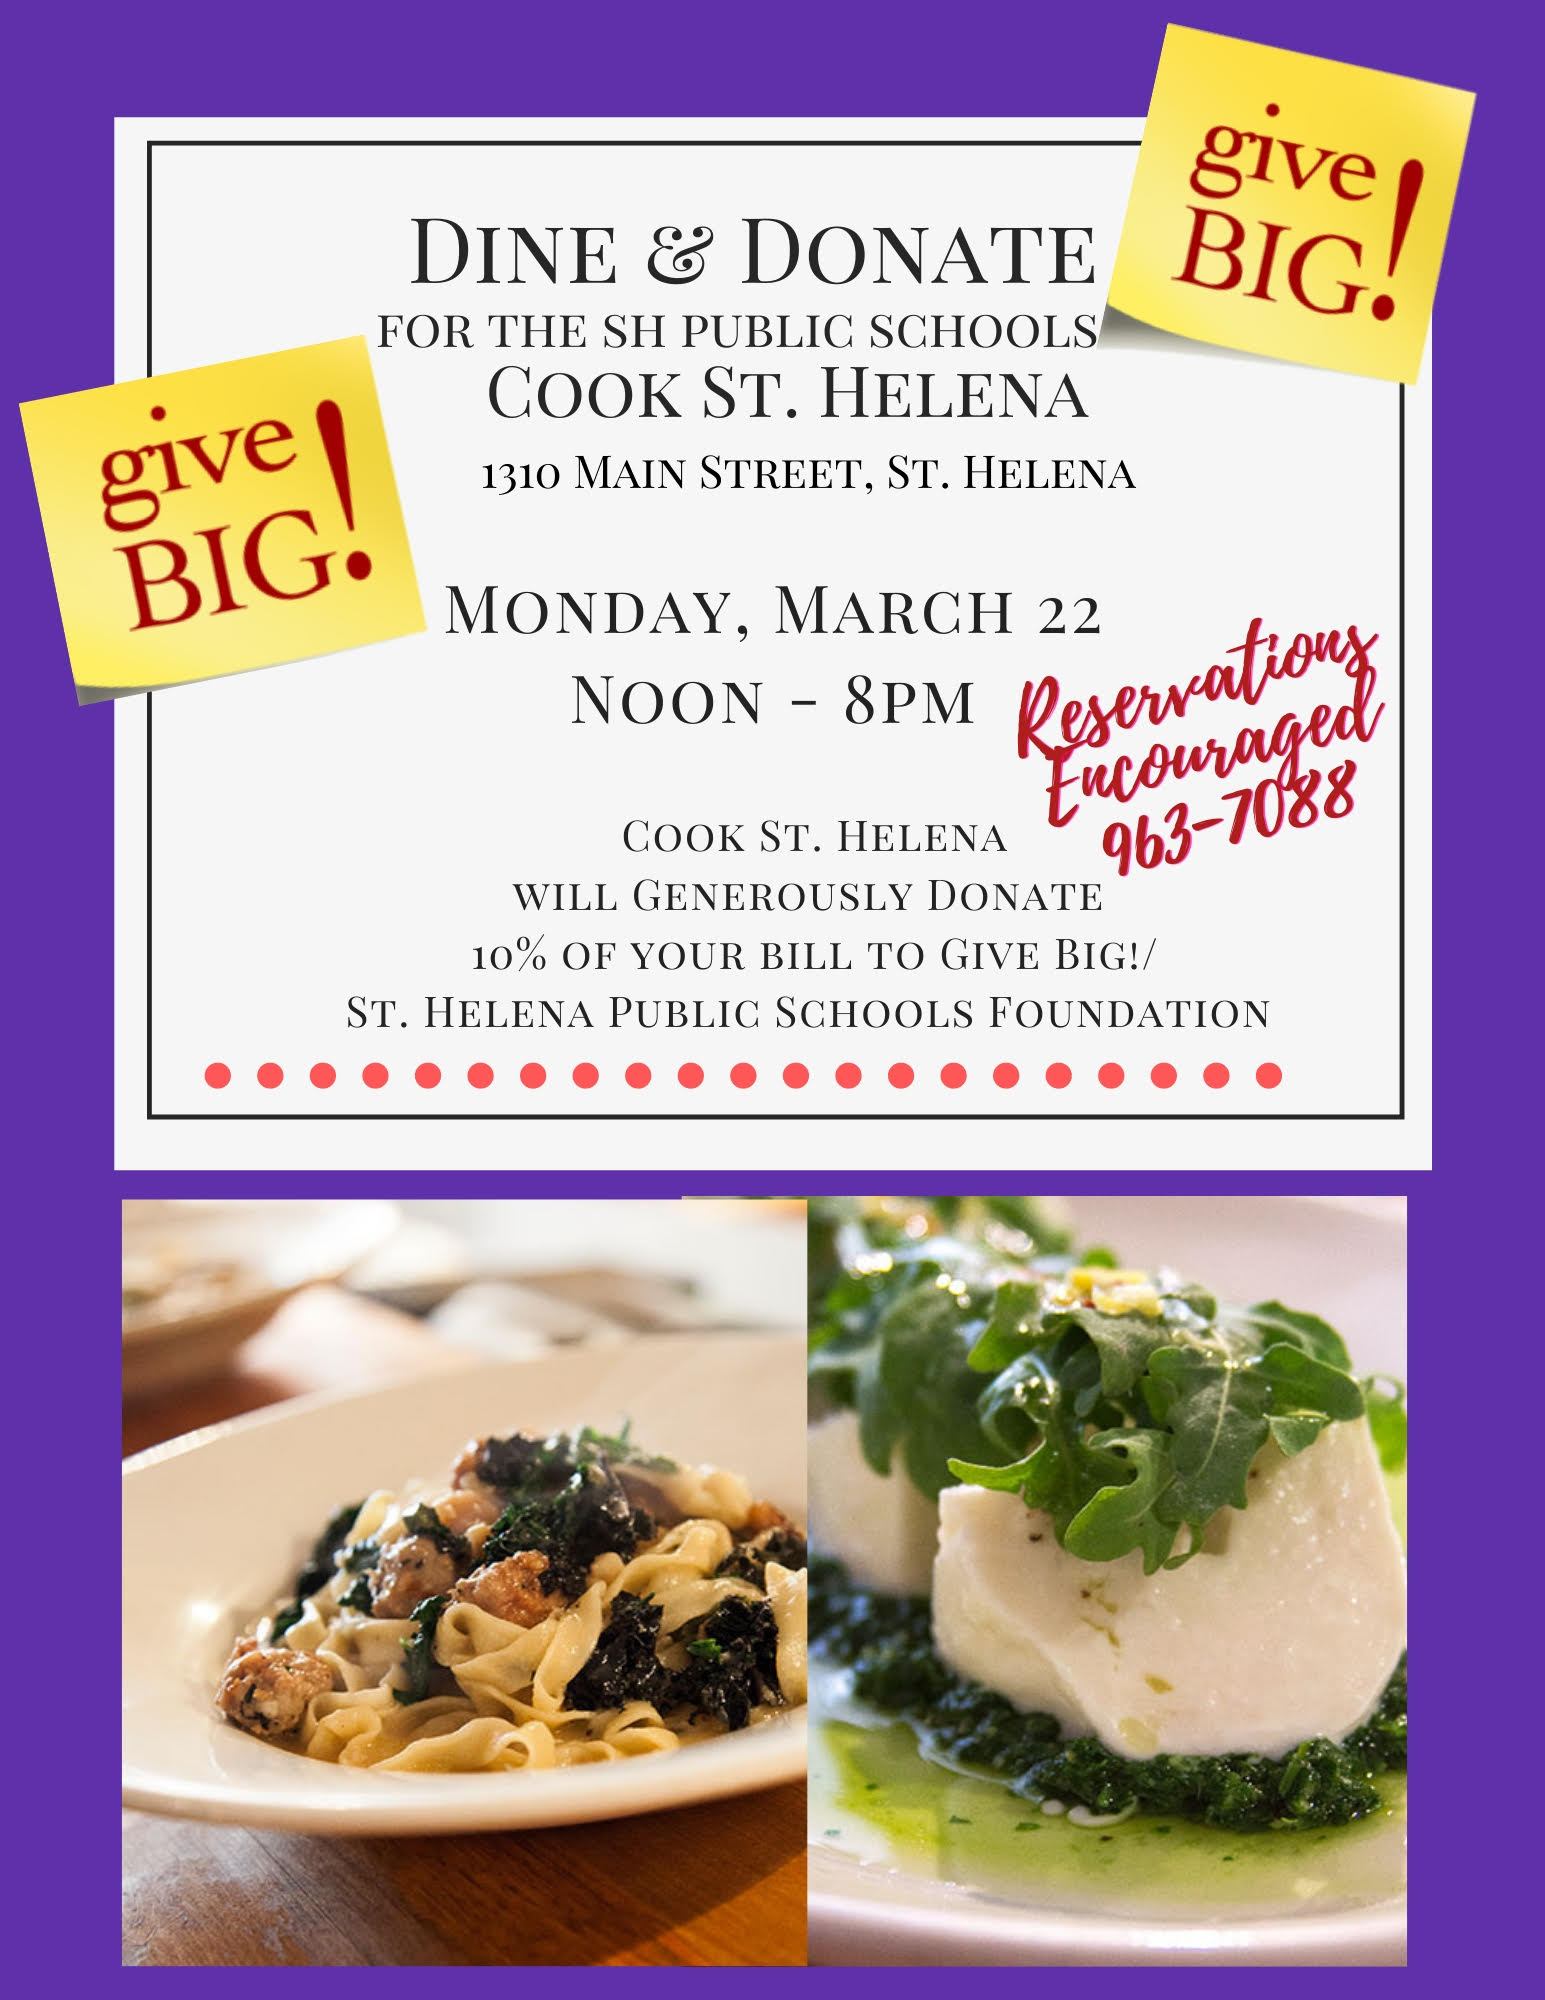 Dine & Donate at Cook – March 22, Noon-8pm